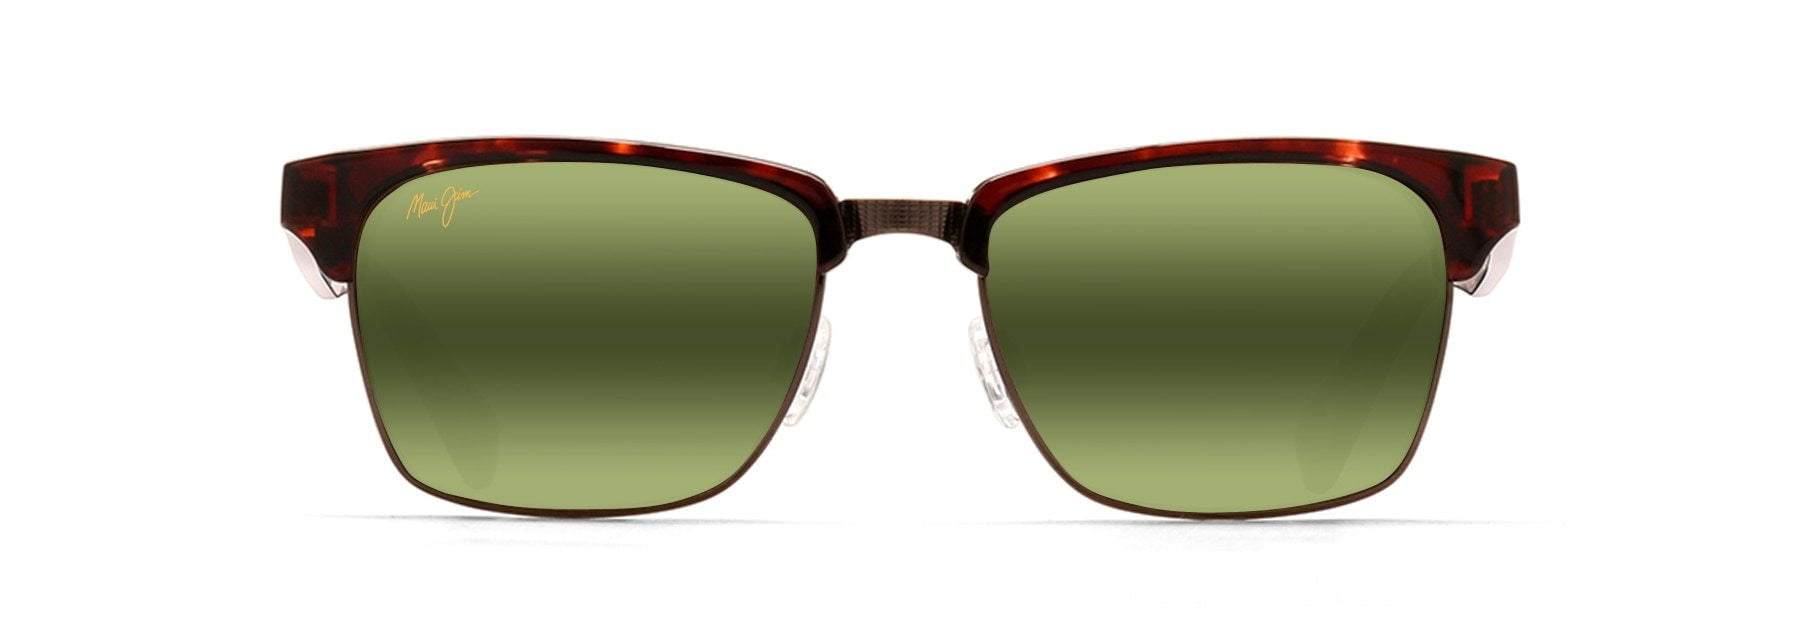 MyMaui Kawika MM257-003 Sunglasses